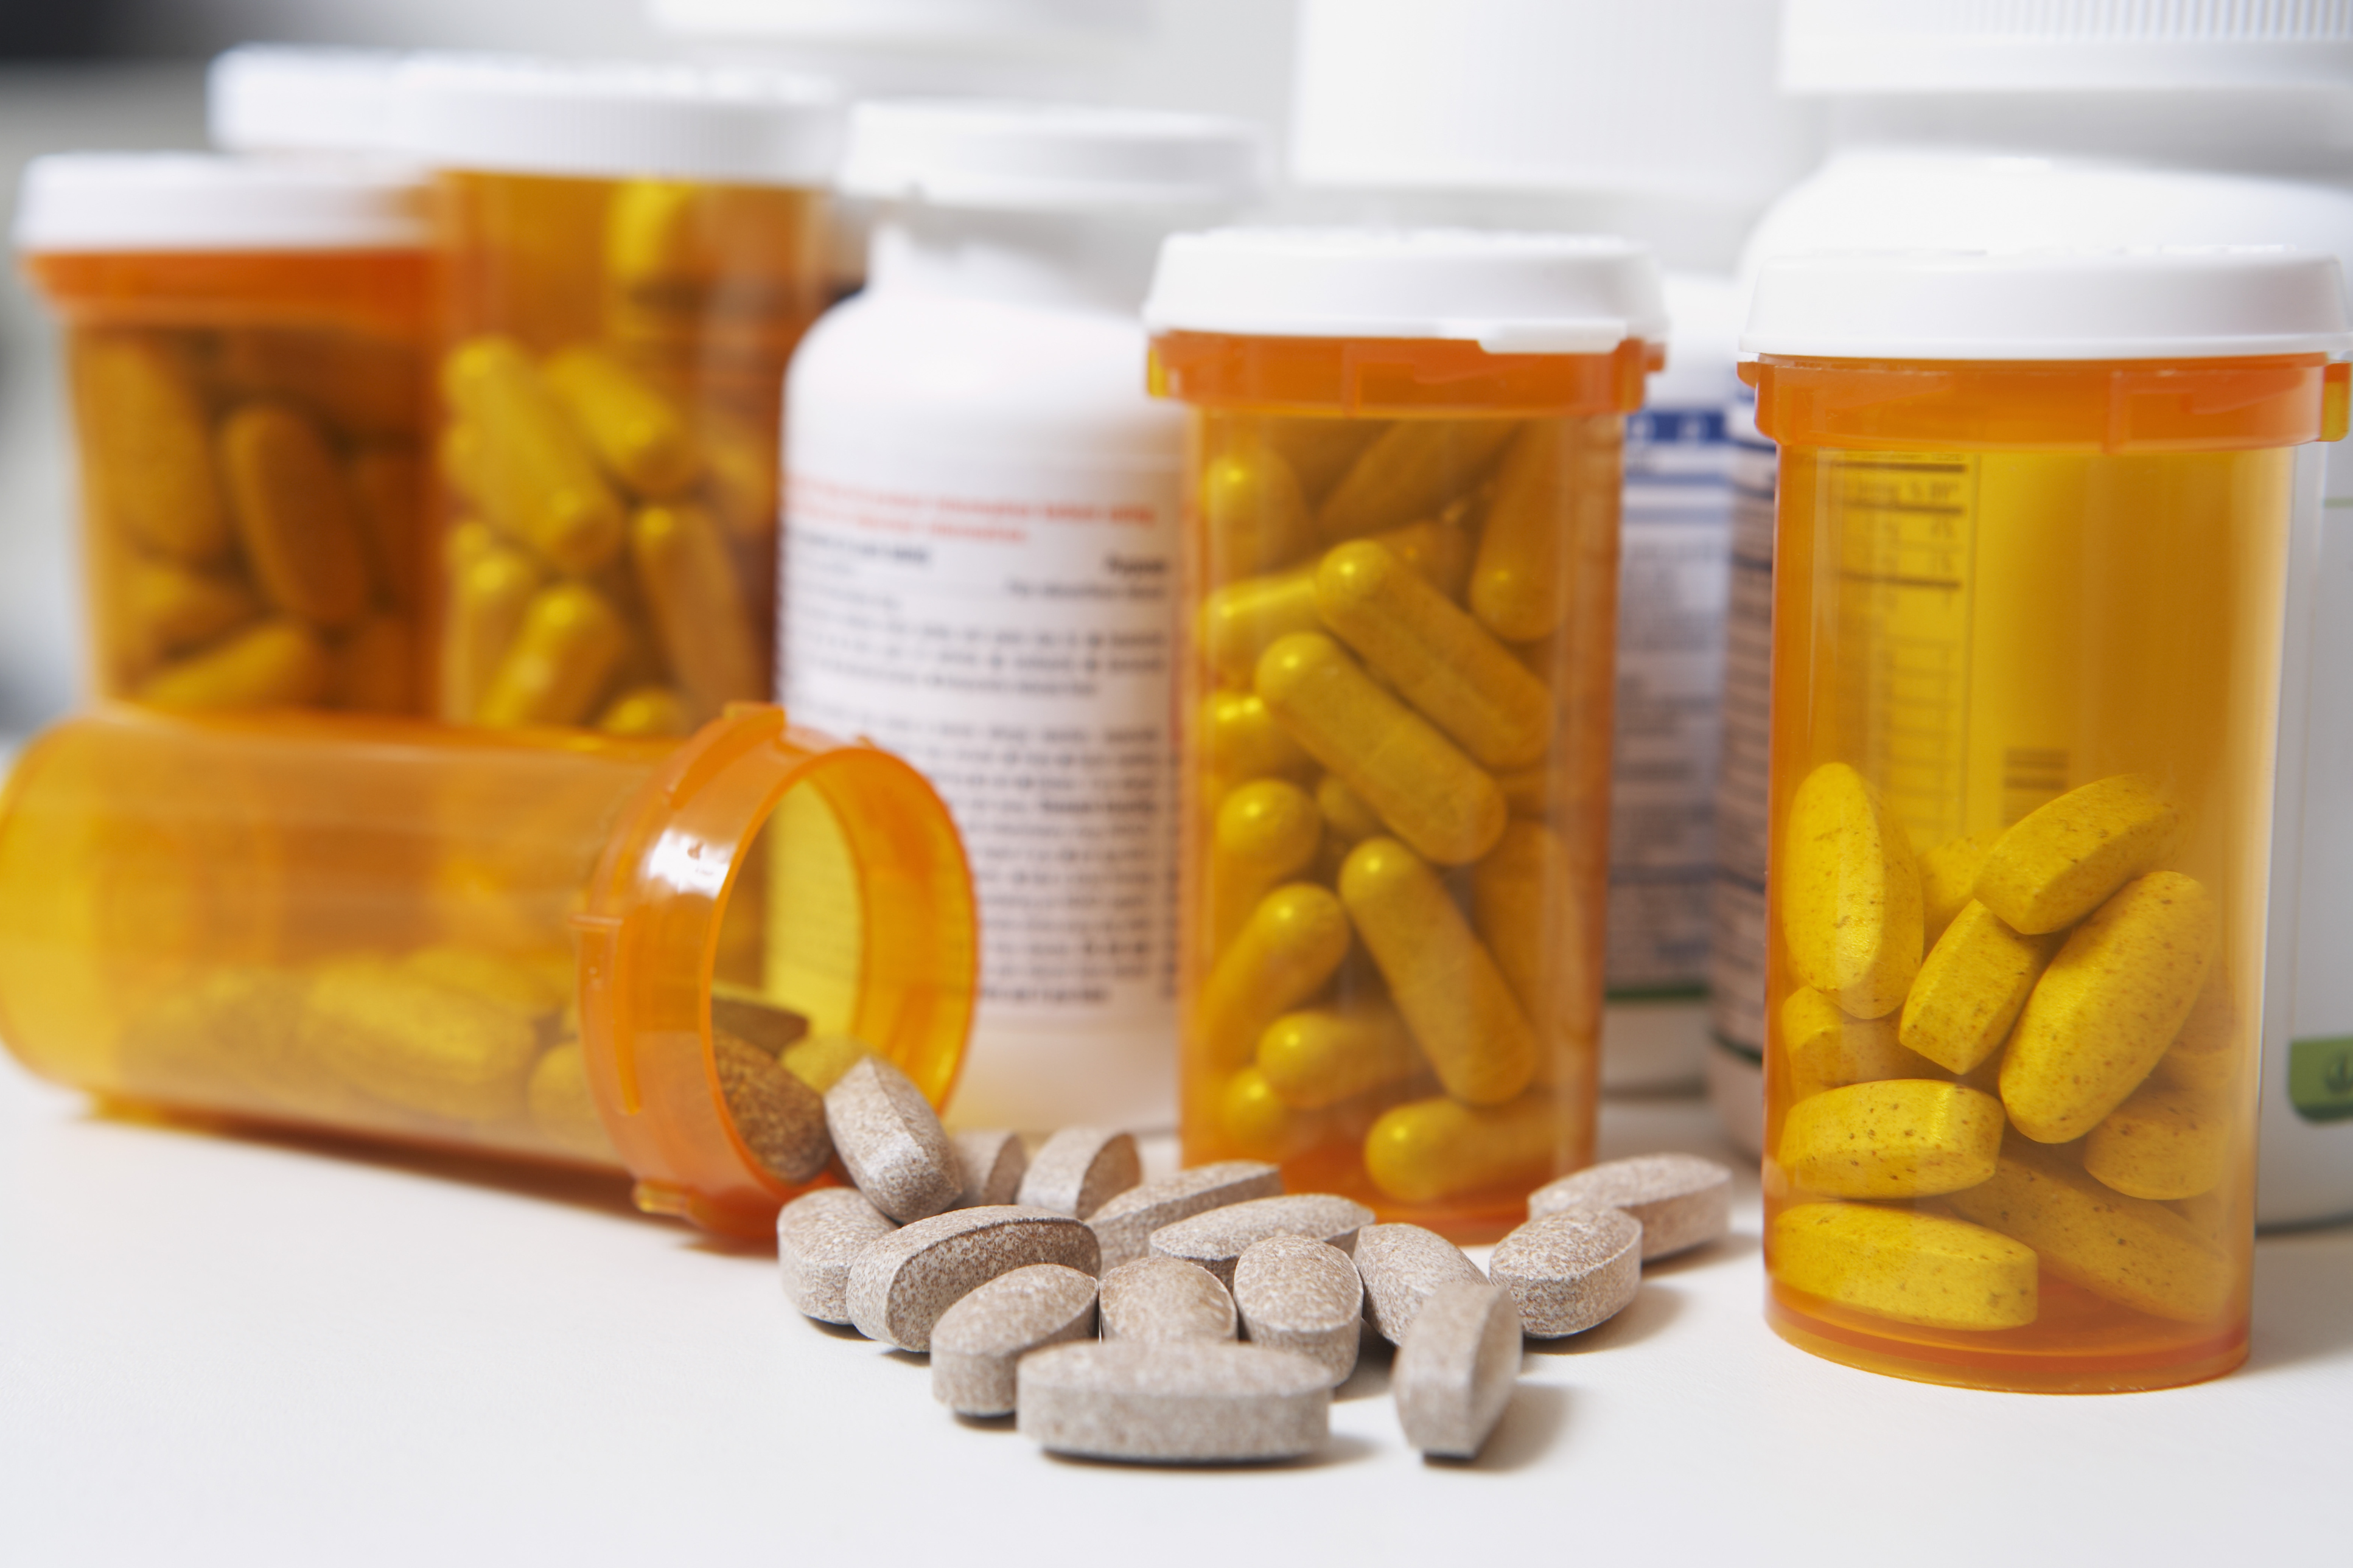 Is Burn Rate Making Your ADHD Medications Less Effective?